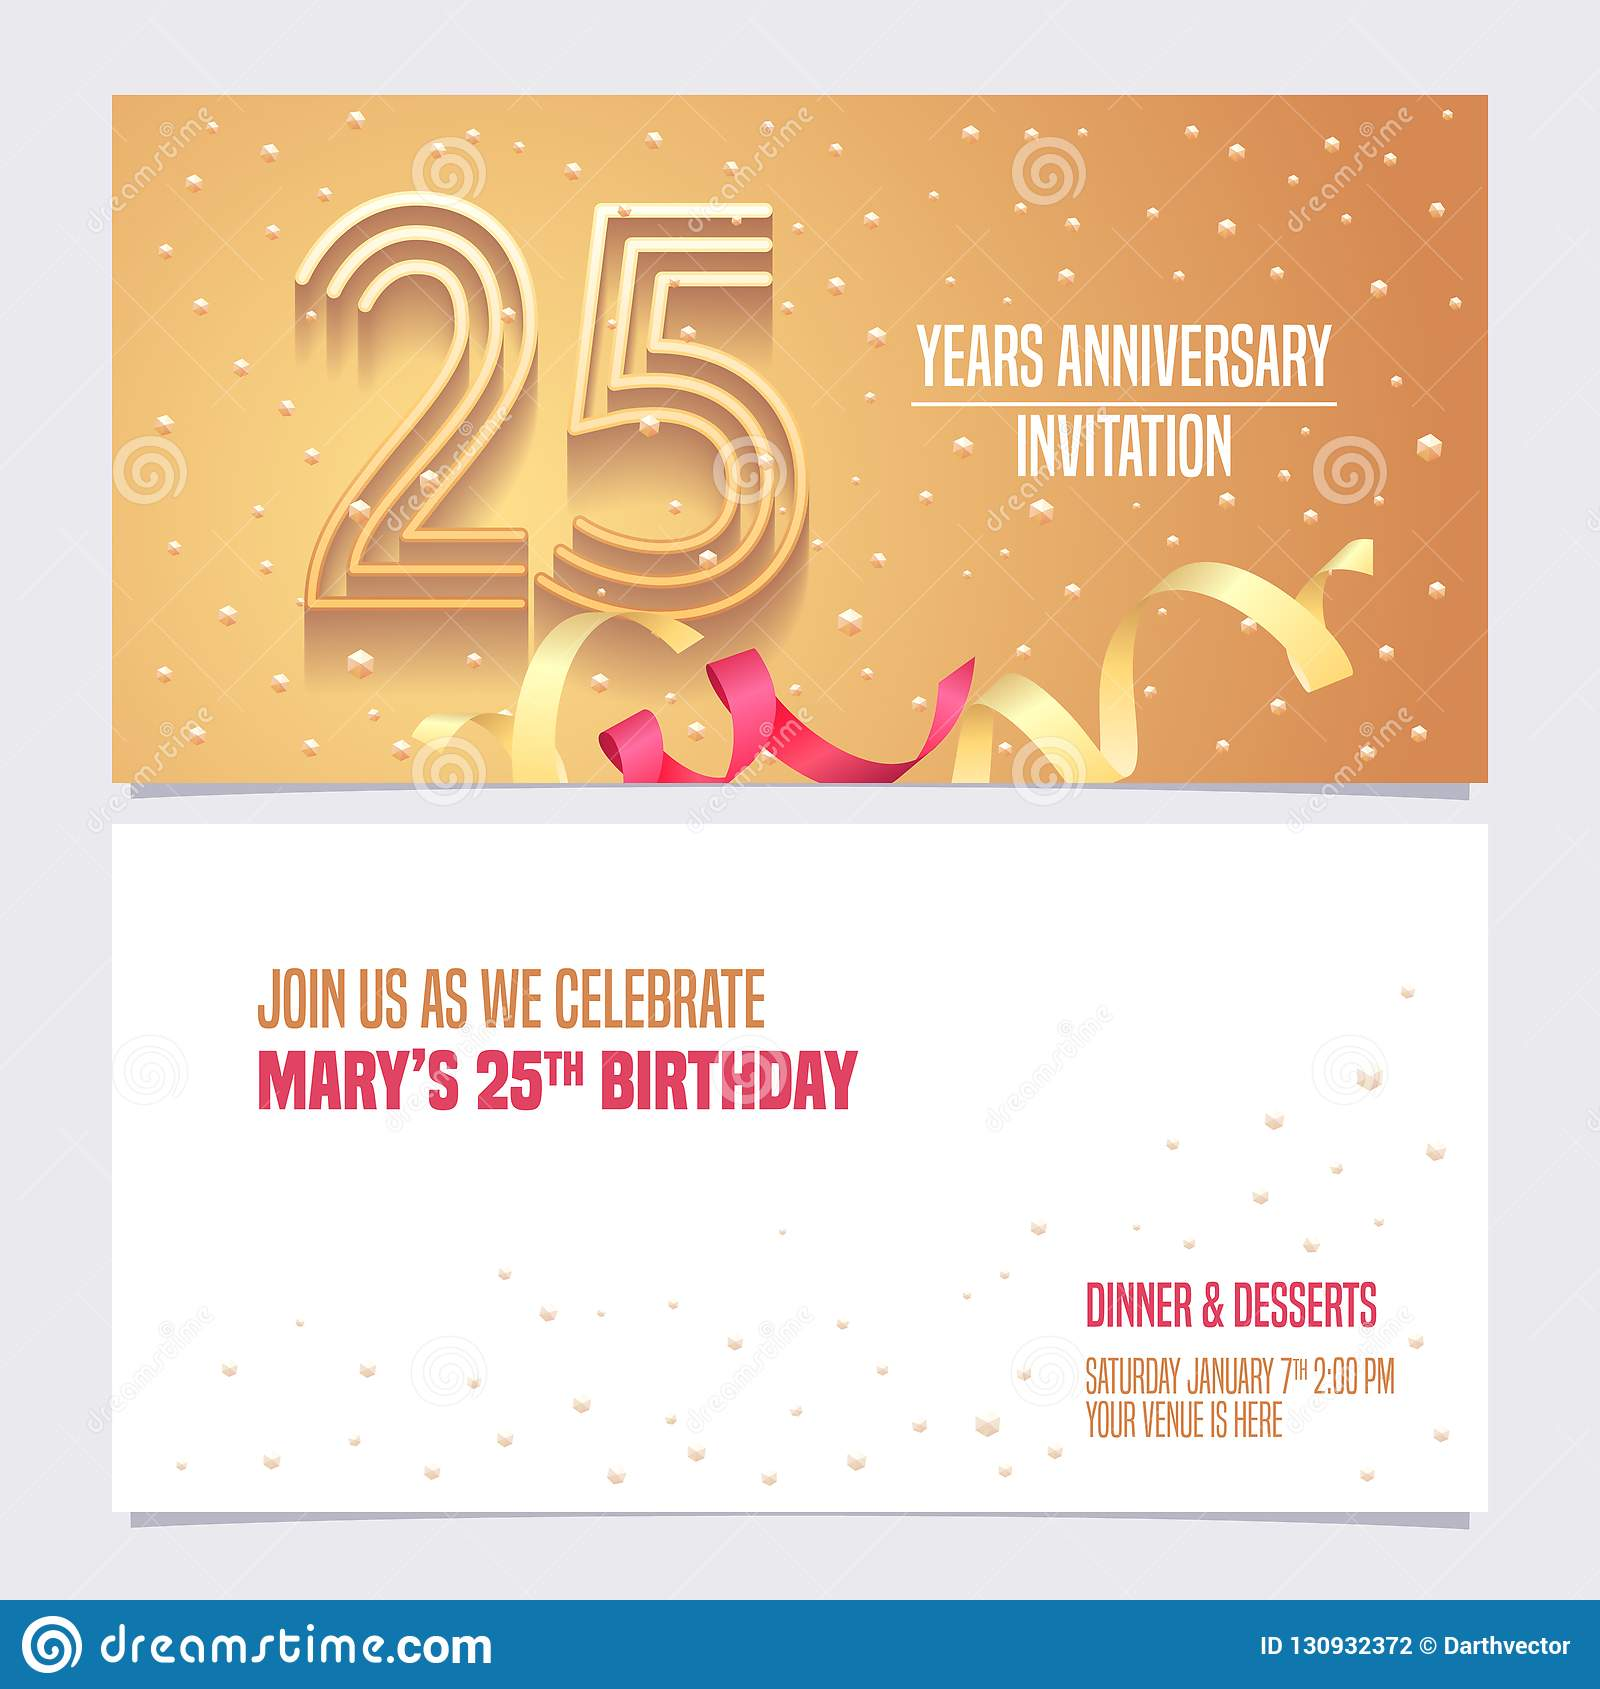 25 Years Anniversary Invitation Vector Illustration Design Element With Golden Abstract Background For 25th Birthday Card Party Invite